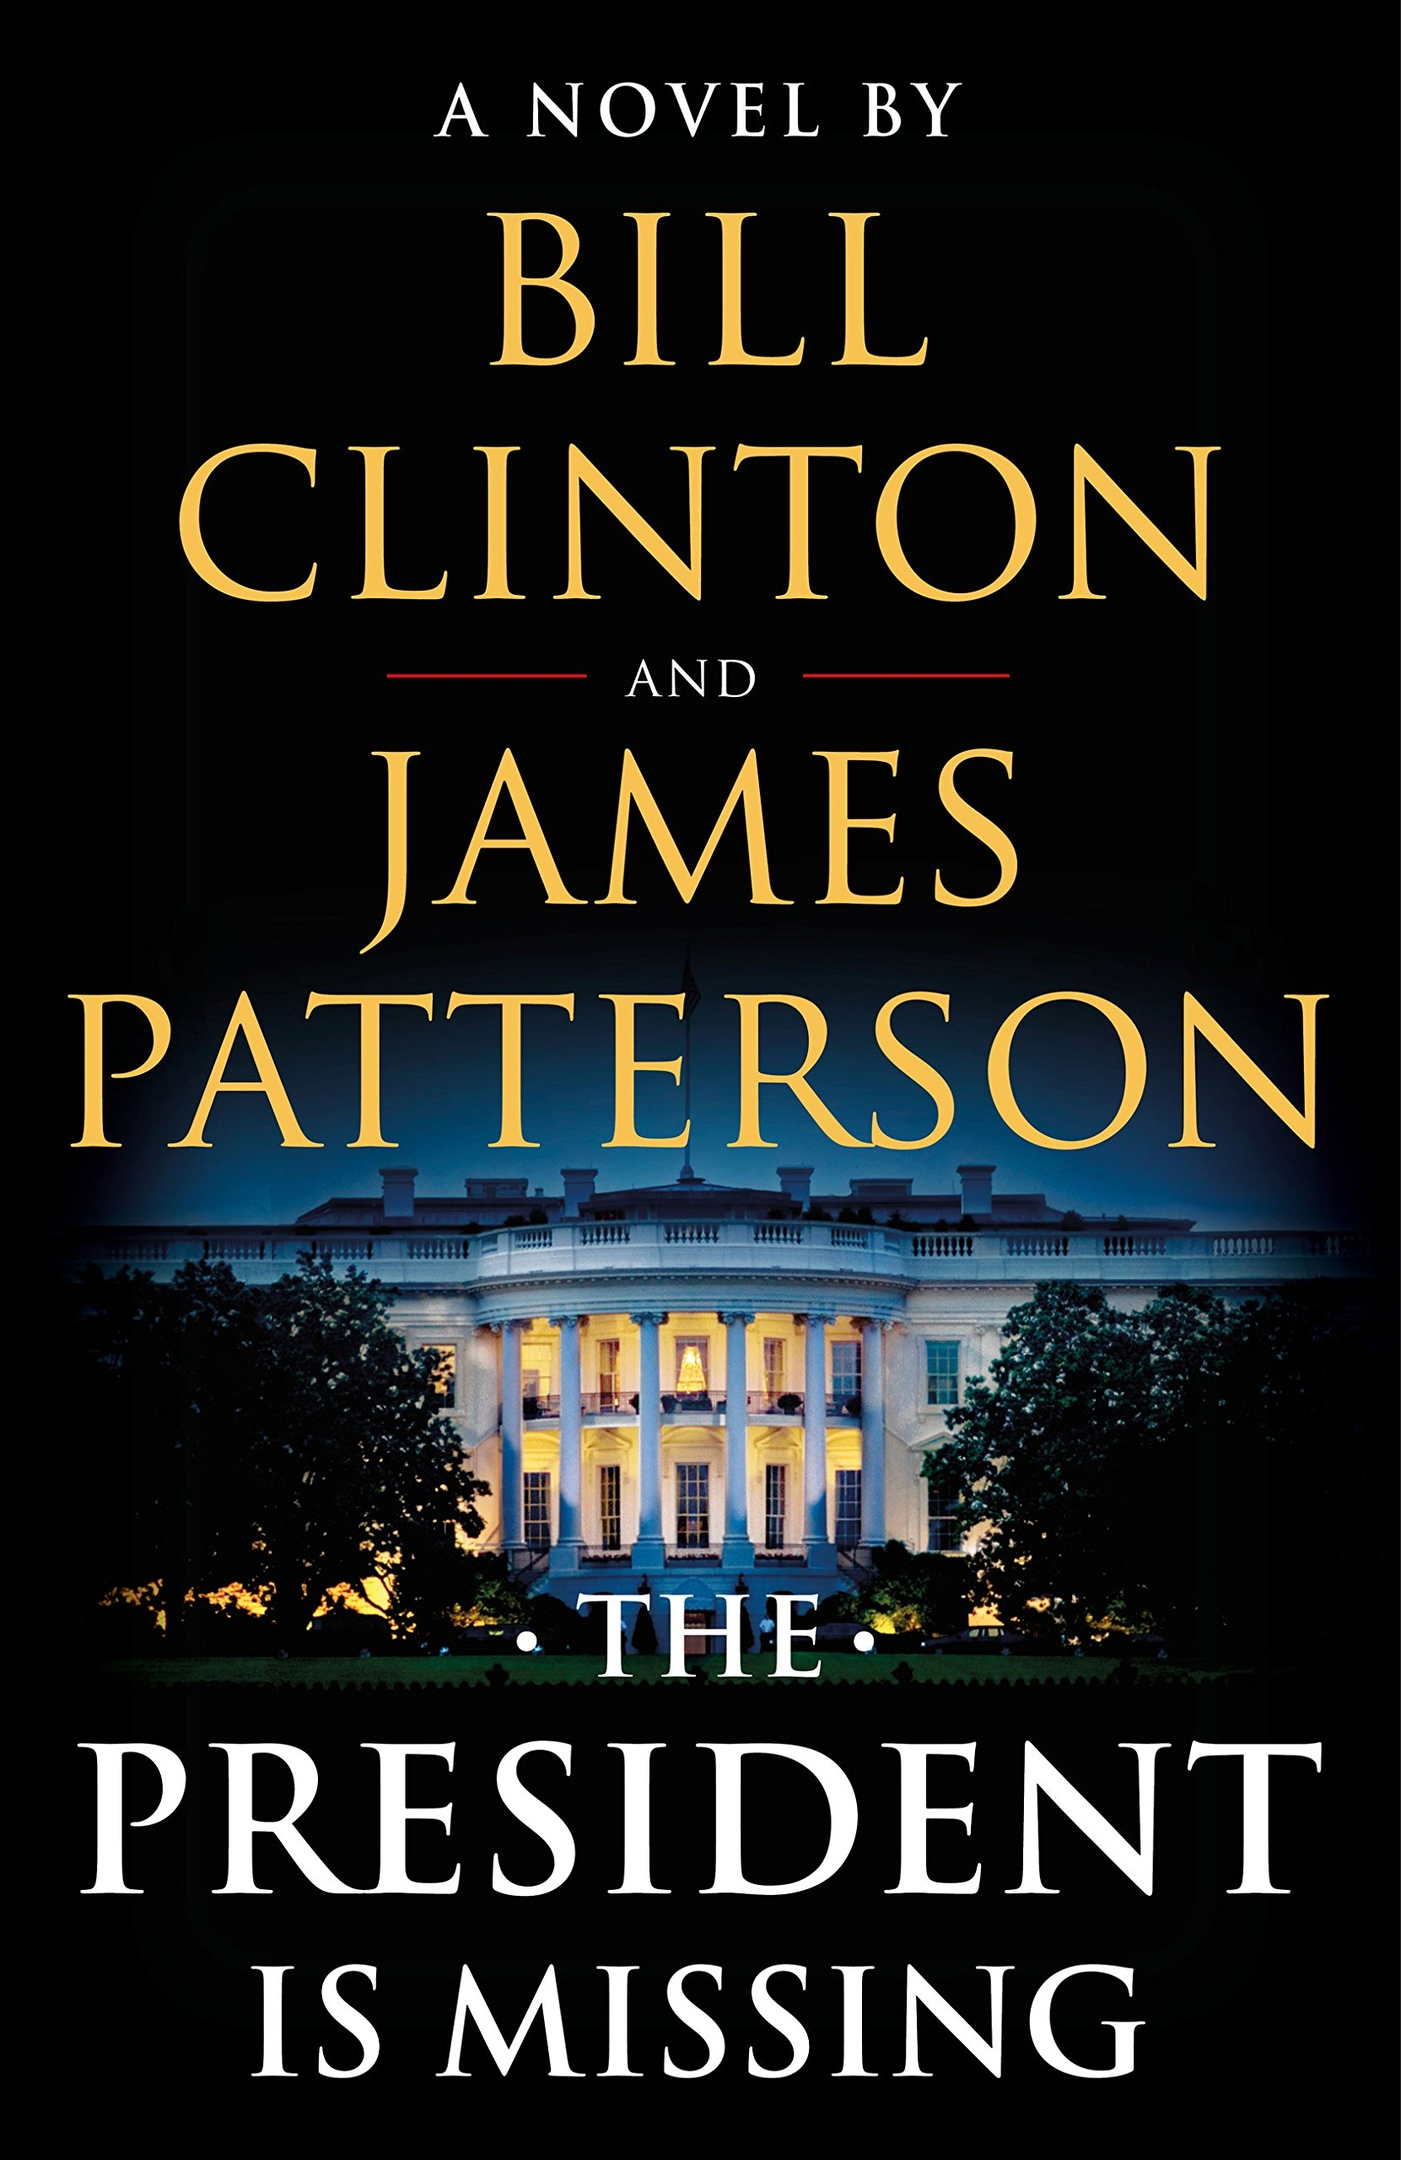 Bill Clinton, James Patterson – The President Is Missing